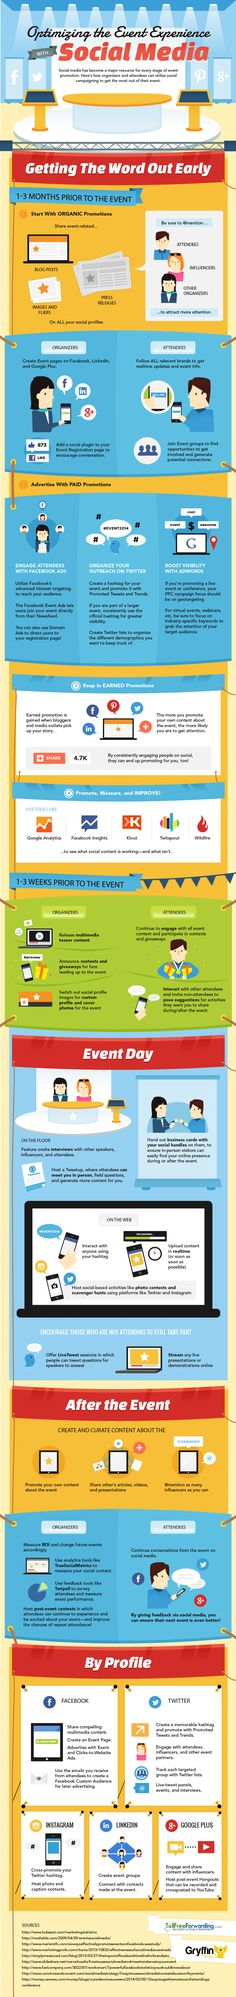 "SOCIAL MEDIA - ""How To Use Social Media To Promote Events - #Infographic #SocialMedia #Marketing""."